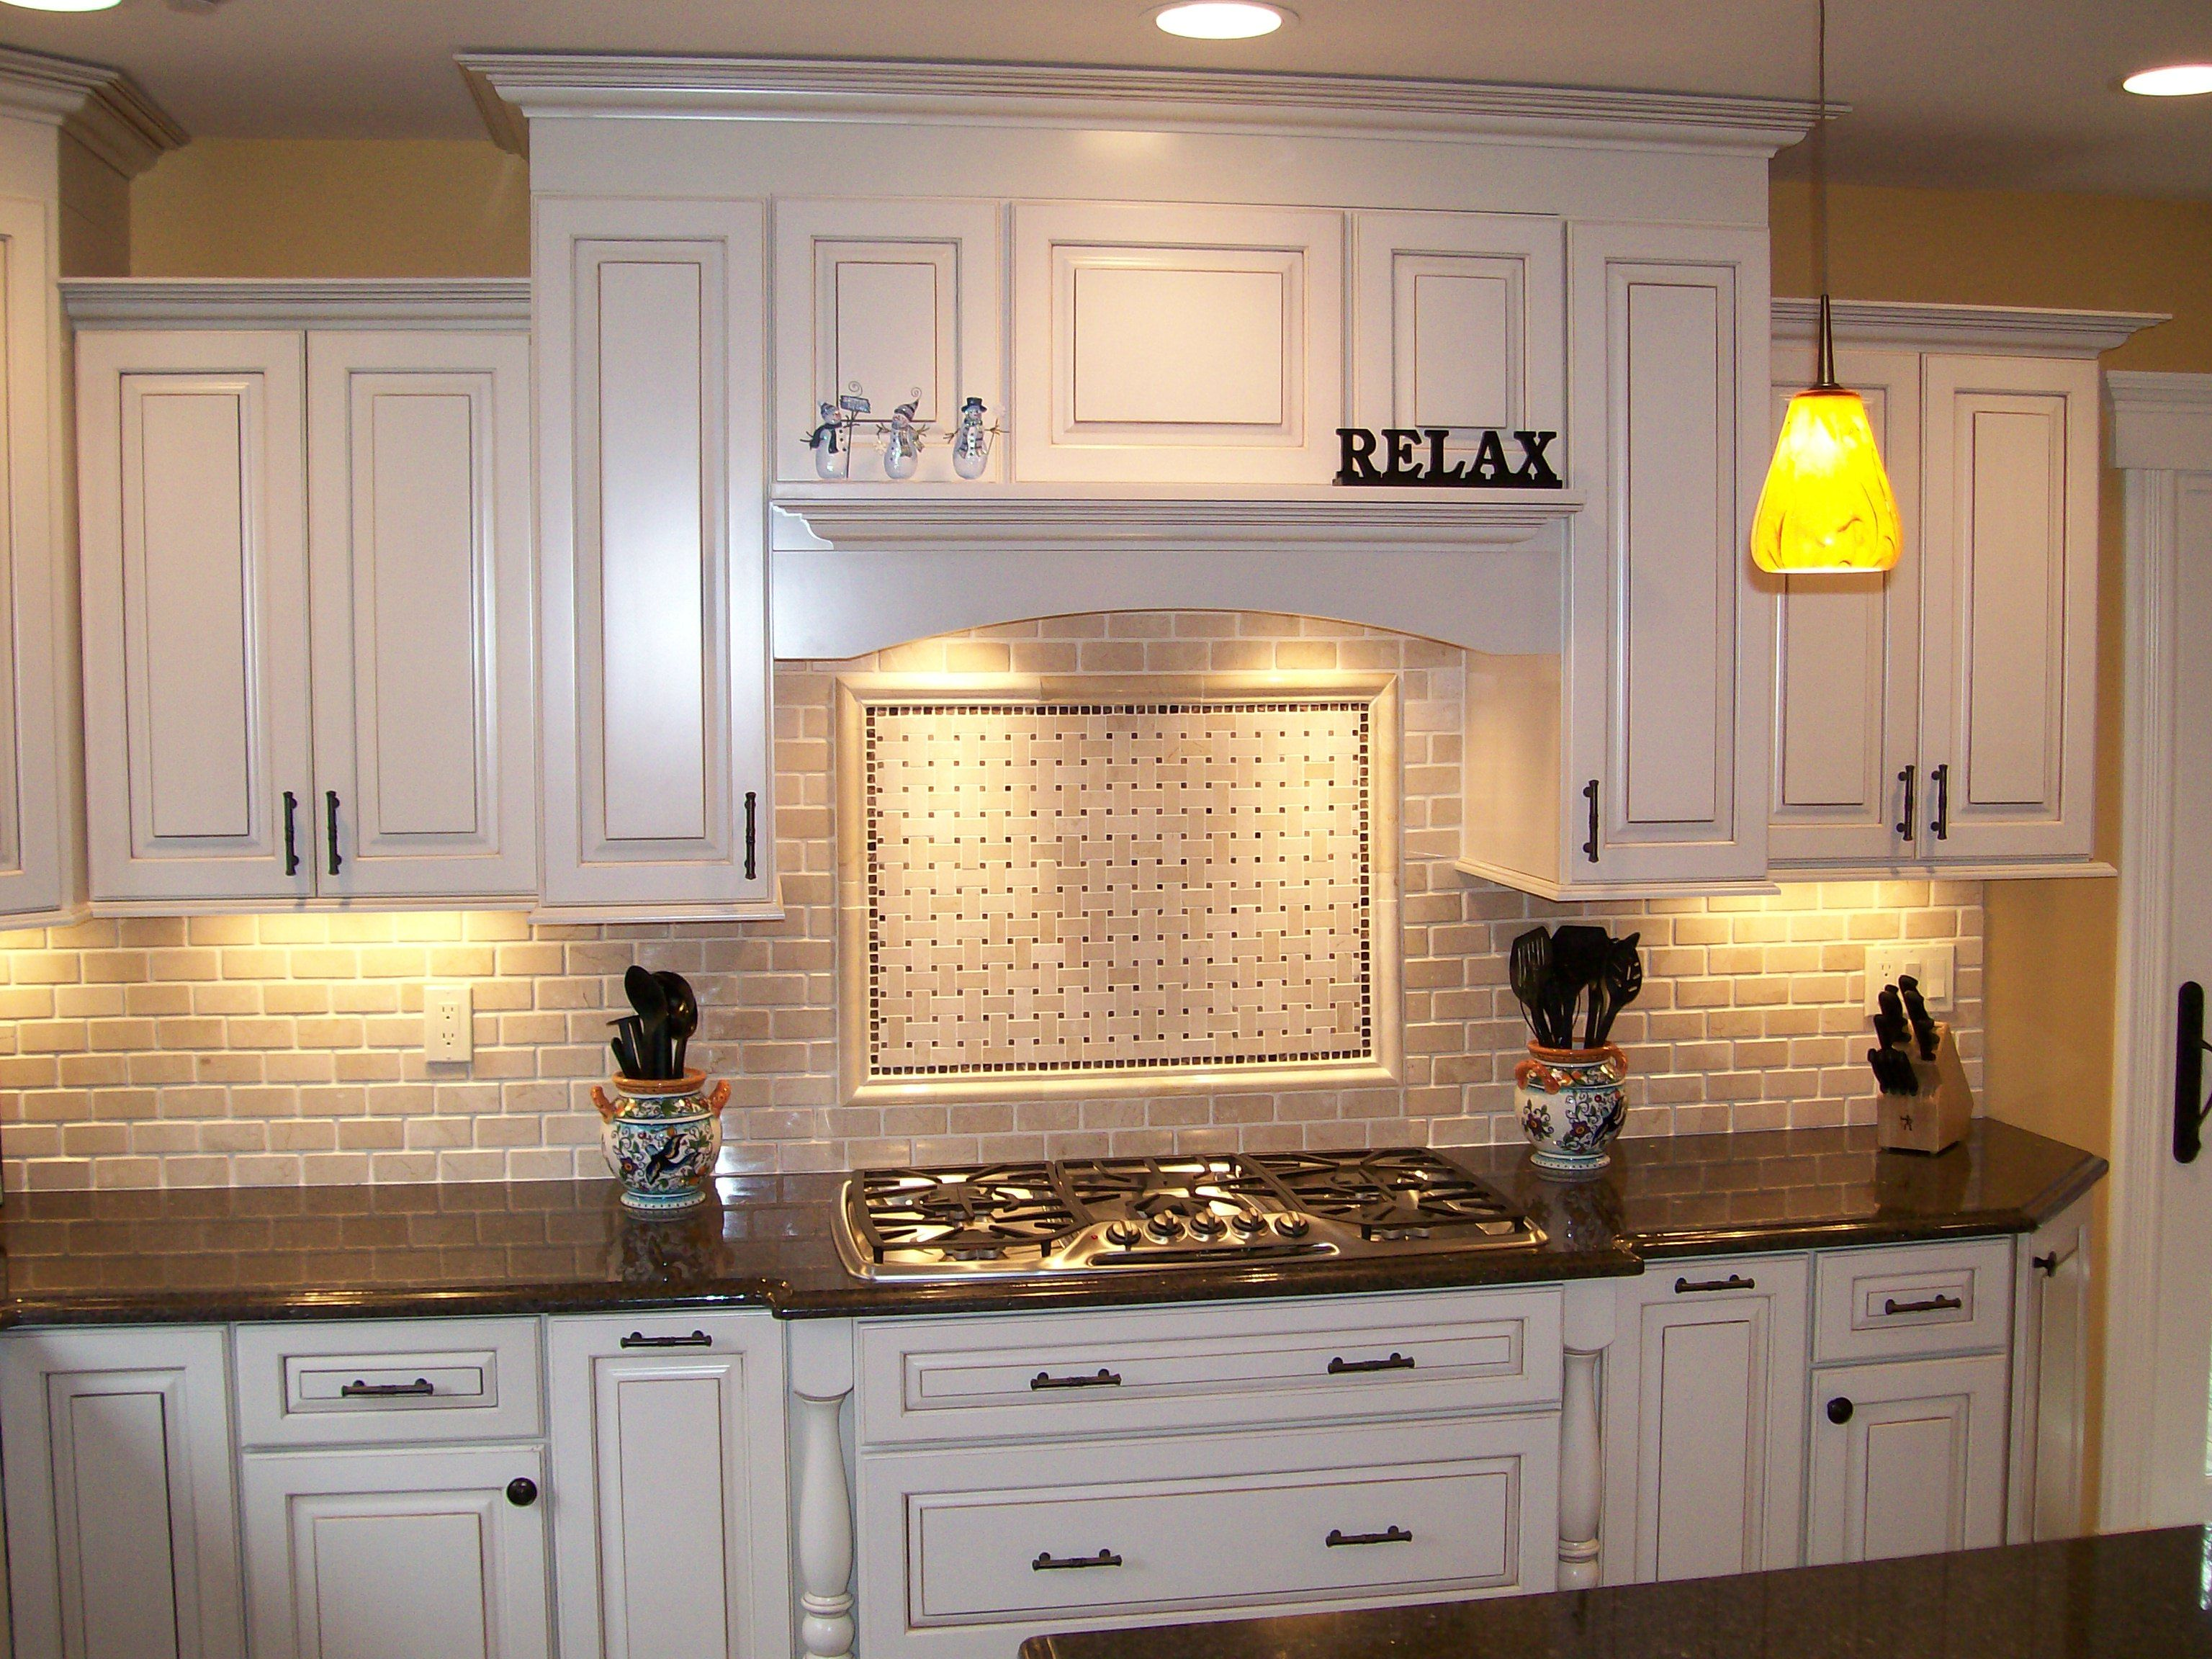 kitchen nice brick backsplash in kitchen with white cabinet and storage and black countertop and wooden kitchen cabinetskitchen tilekitchen - Kitchen Tile Backsplash Ideas With White Cabinets